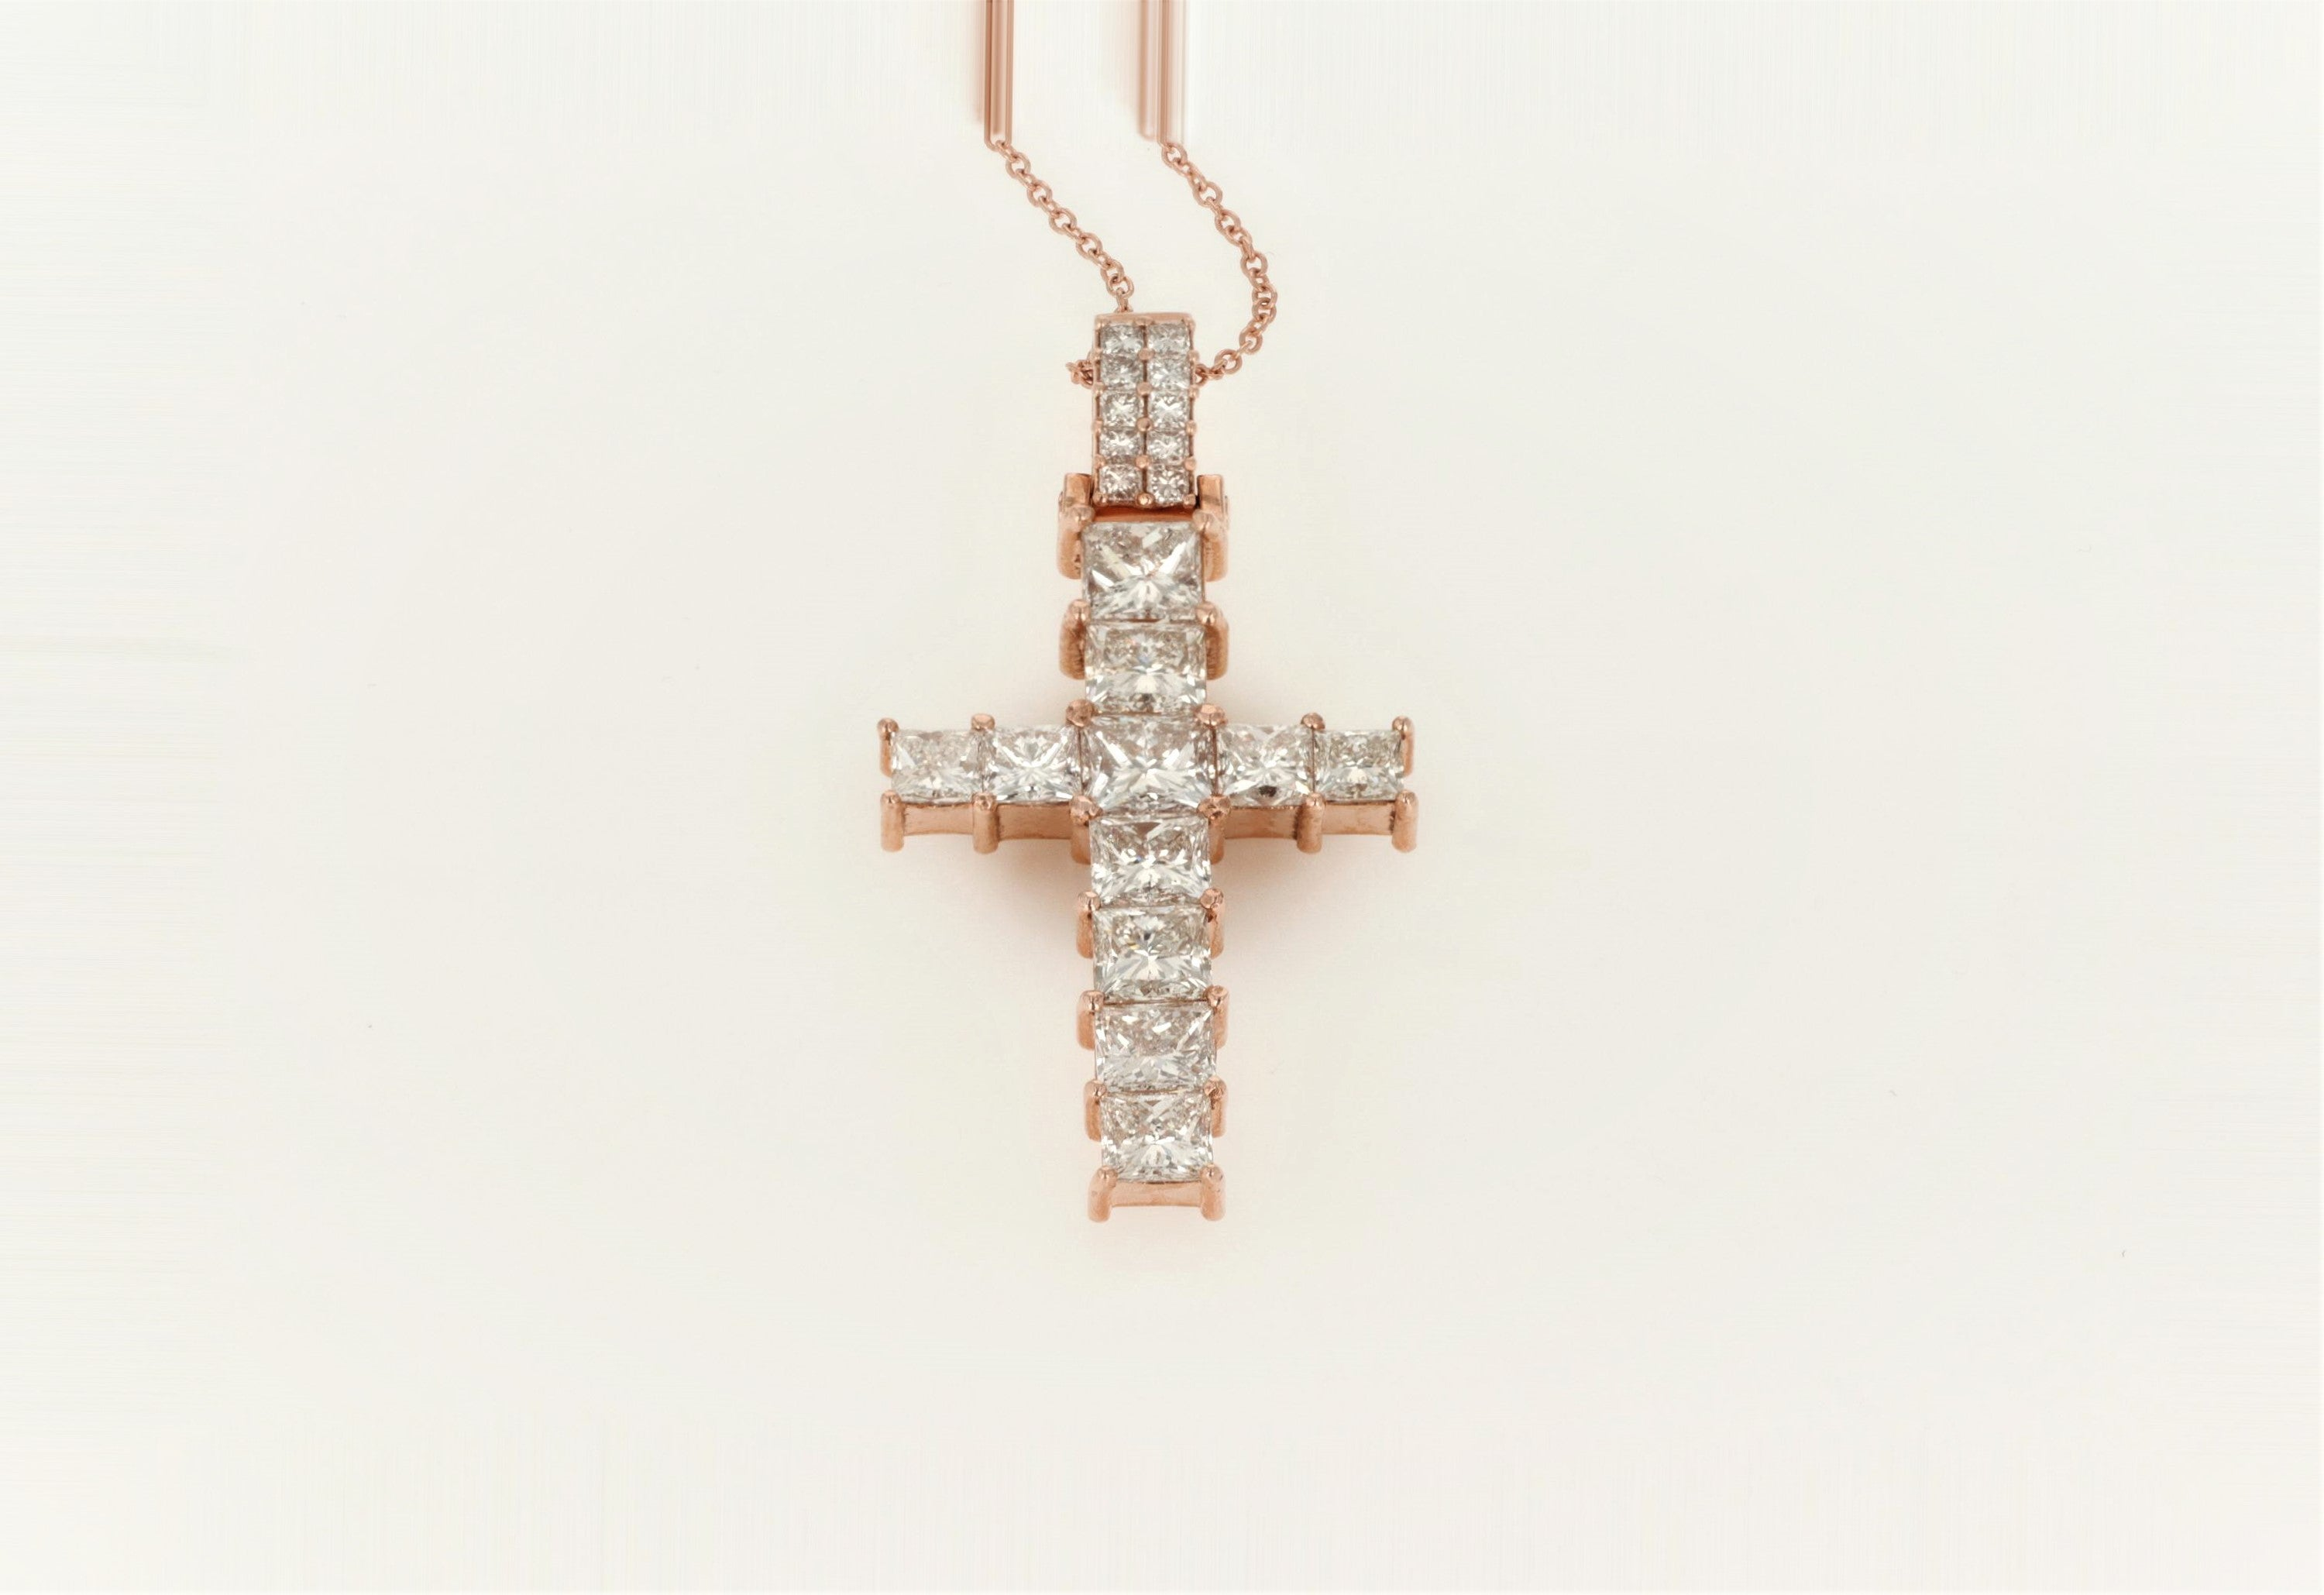 10K Women's Rose Gold (Stamped) Diamond Cross Pendant